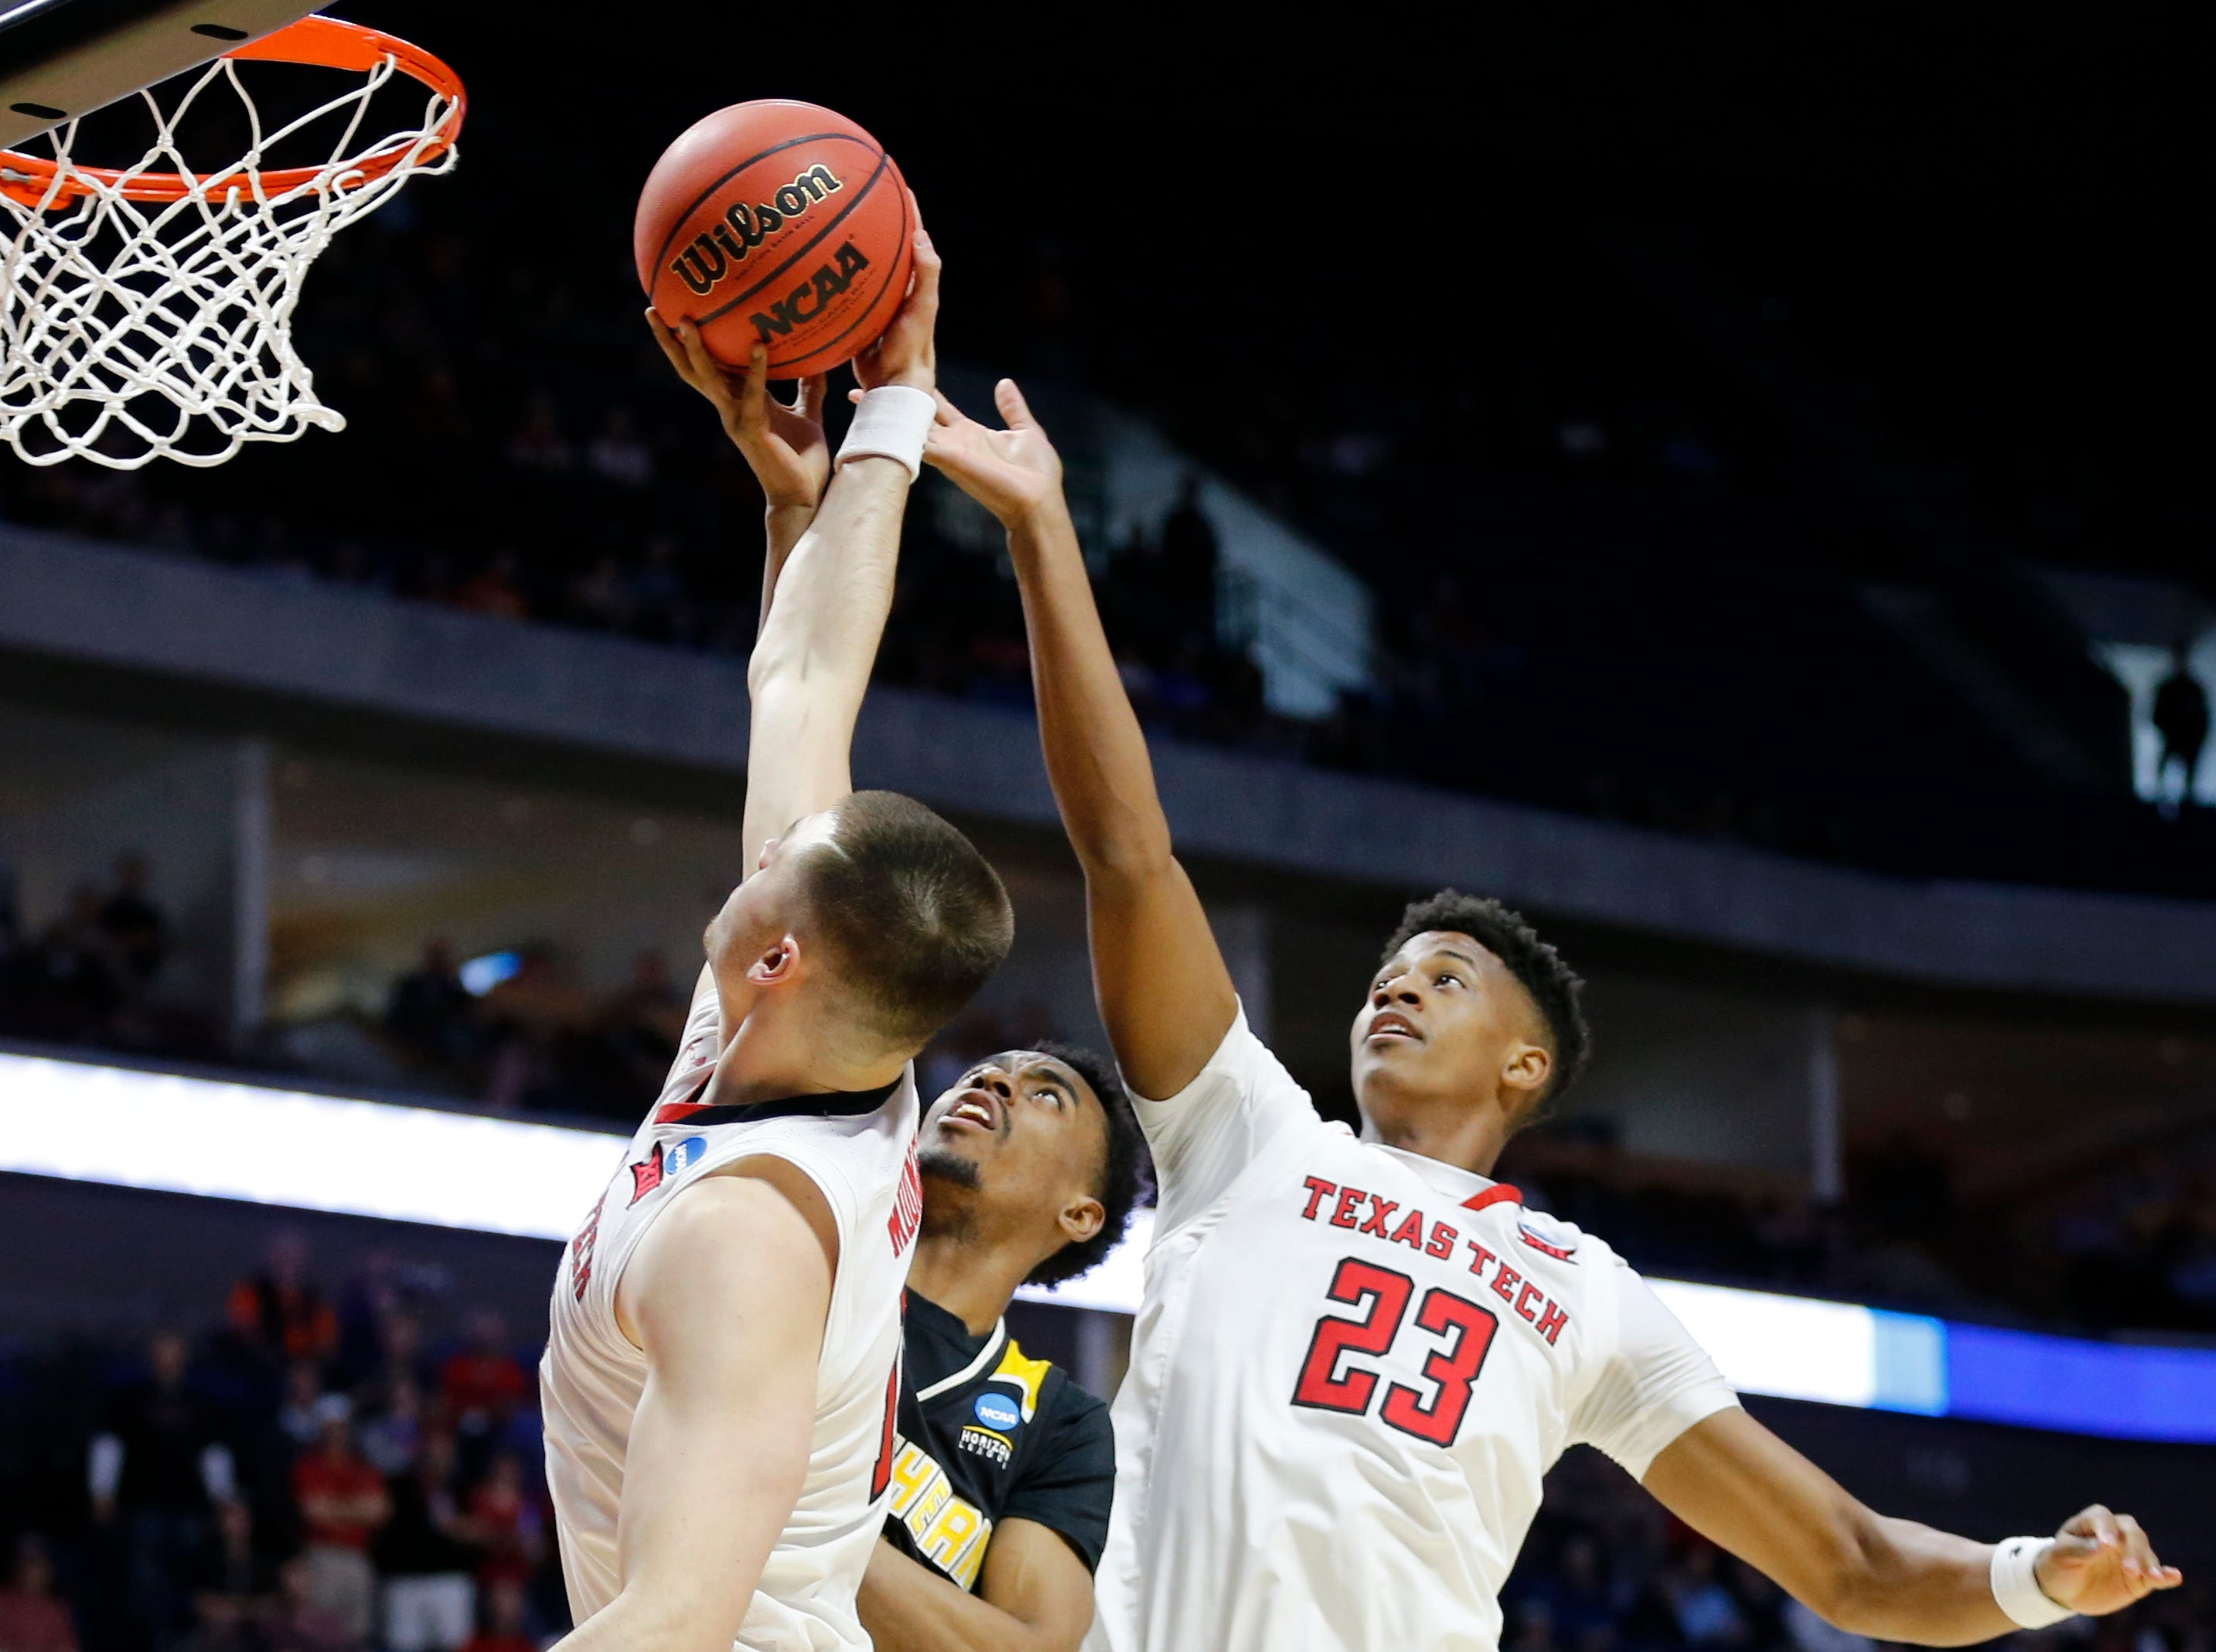 Northern Kentucky Norse guard Jalen Tate (11) goes up for a rebound in the first half of the NCAA Tournament First Round game between the 14-seeded Northern Kentucky Norse and the 3-seeded Texas Tech Red Raiders the BOK Center in downtown Tulsa on Friday, March 22, 2019. Texas Tech led 30-26 at halftime.